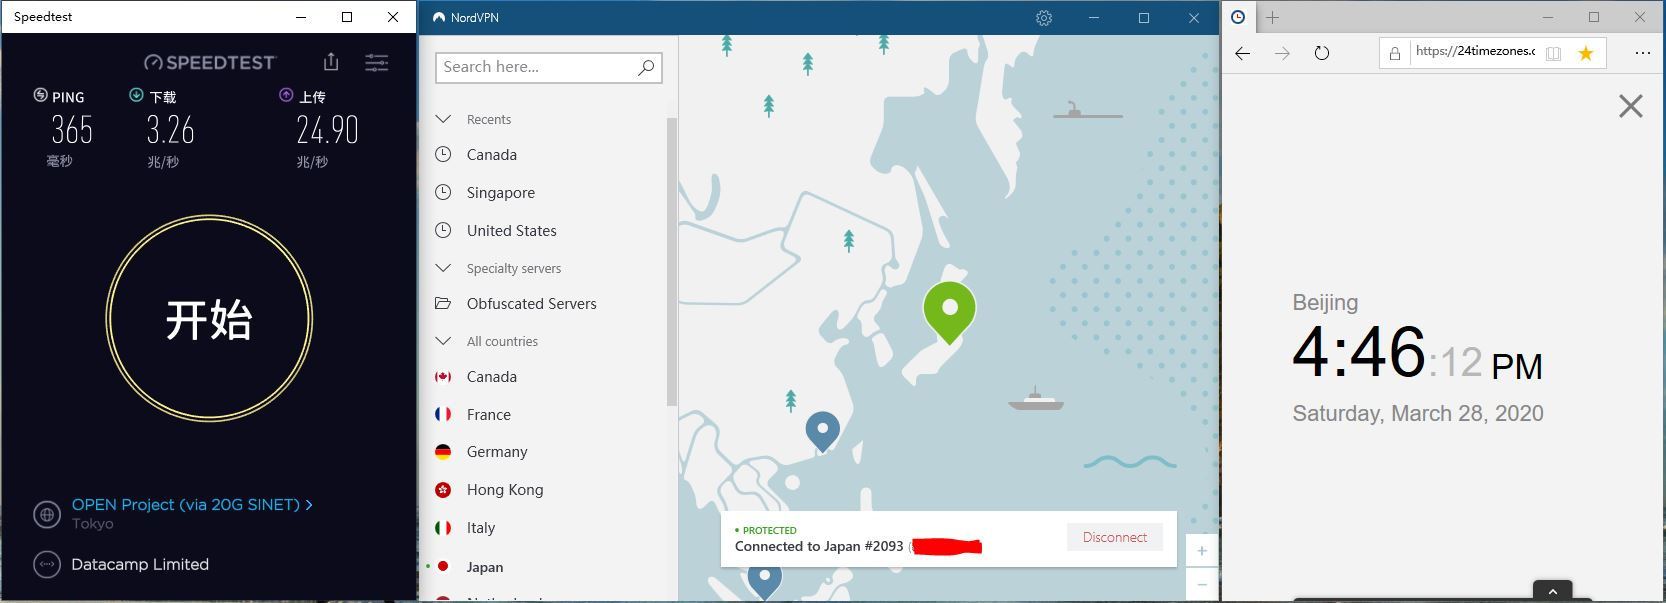 Windows10 NordVPN Japan #2093 中国VPN翻墙 科学上网 Speedtest测速 - 20200328